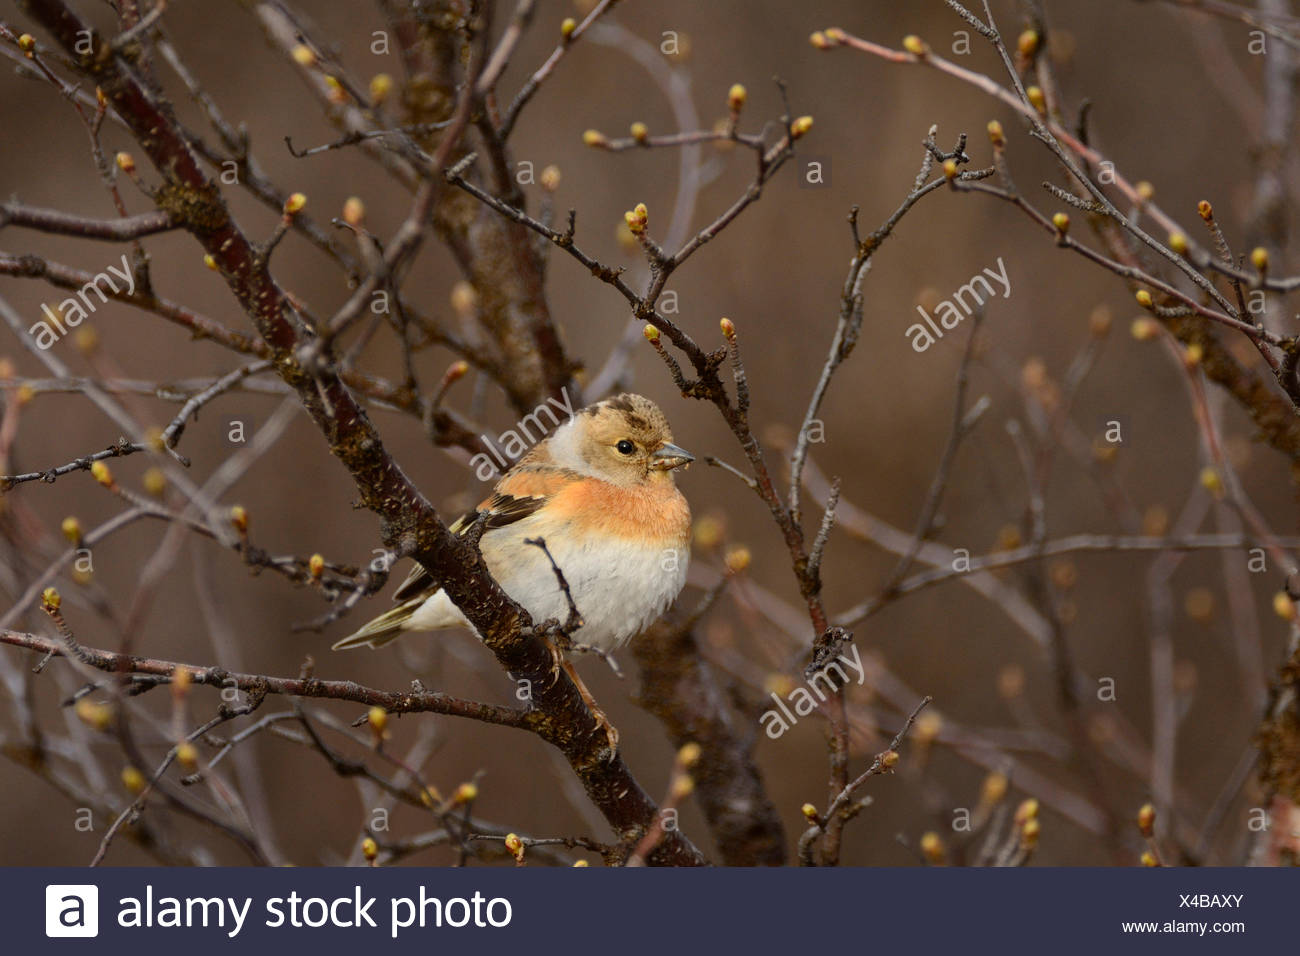 Brambling, Fringilla montifringilla, Fringillidae, finch, bird, animal, Einunndalen, Folldal, Hedmark, Norway - Stock Image